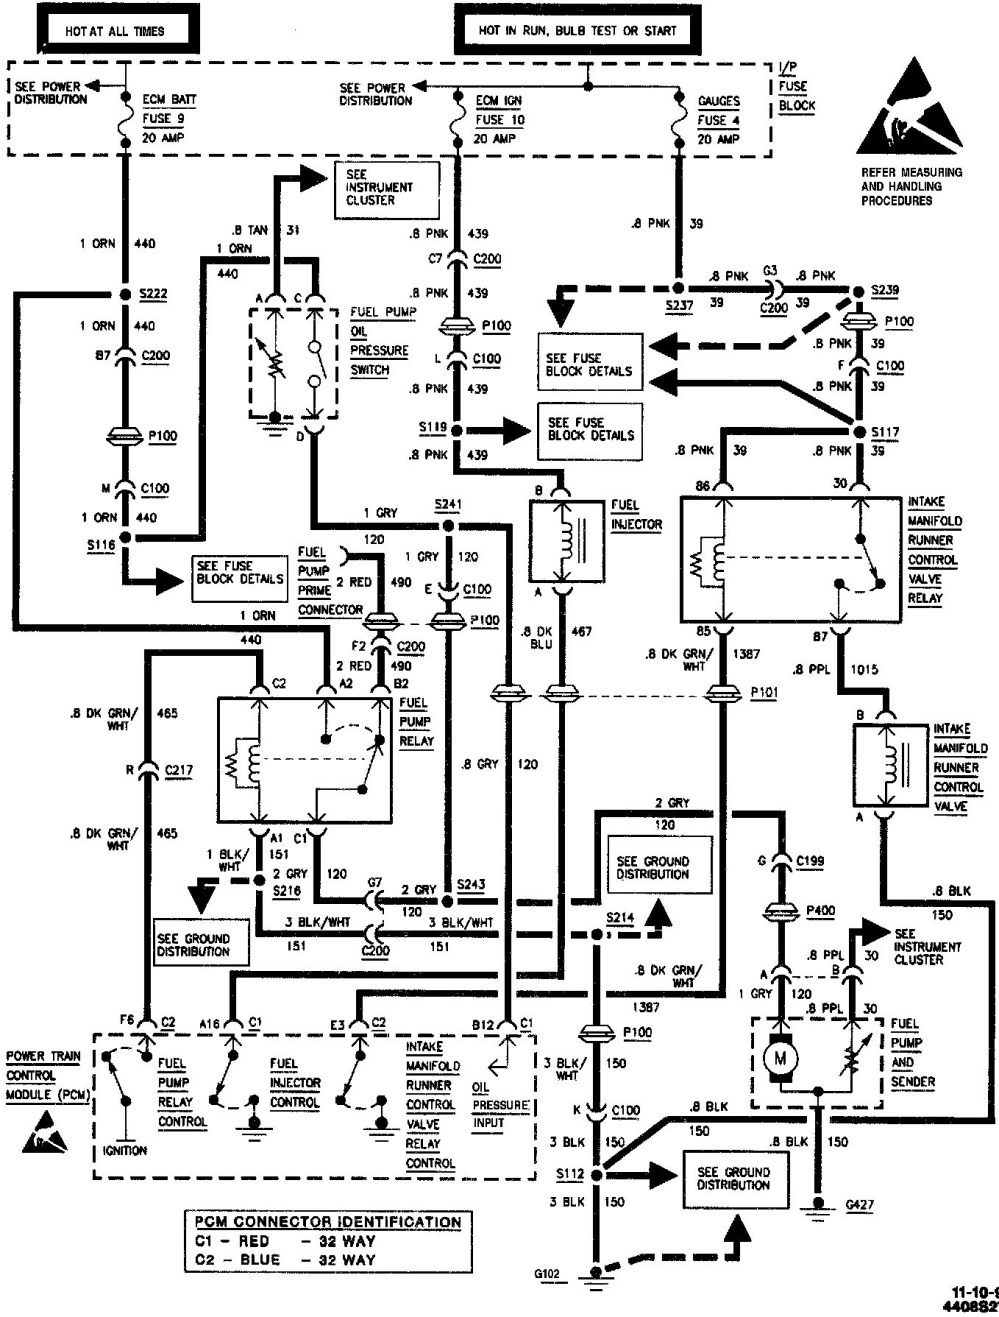 medium resolution of 1995 gmc jimmy wiring diagram schema wiring diagram 1995 gmc jimmy wiring